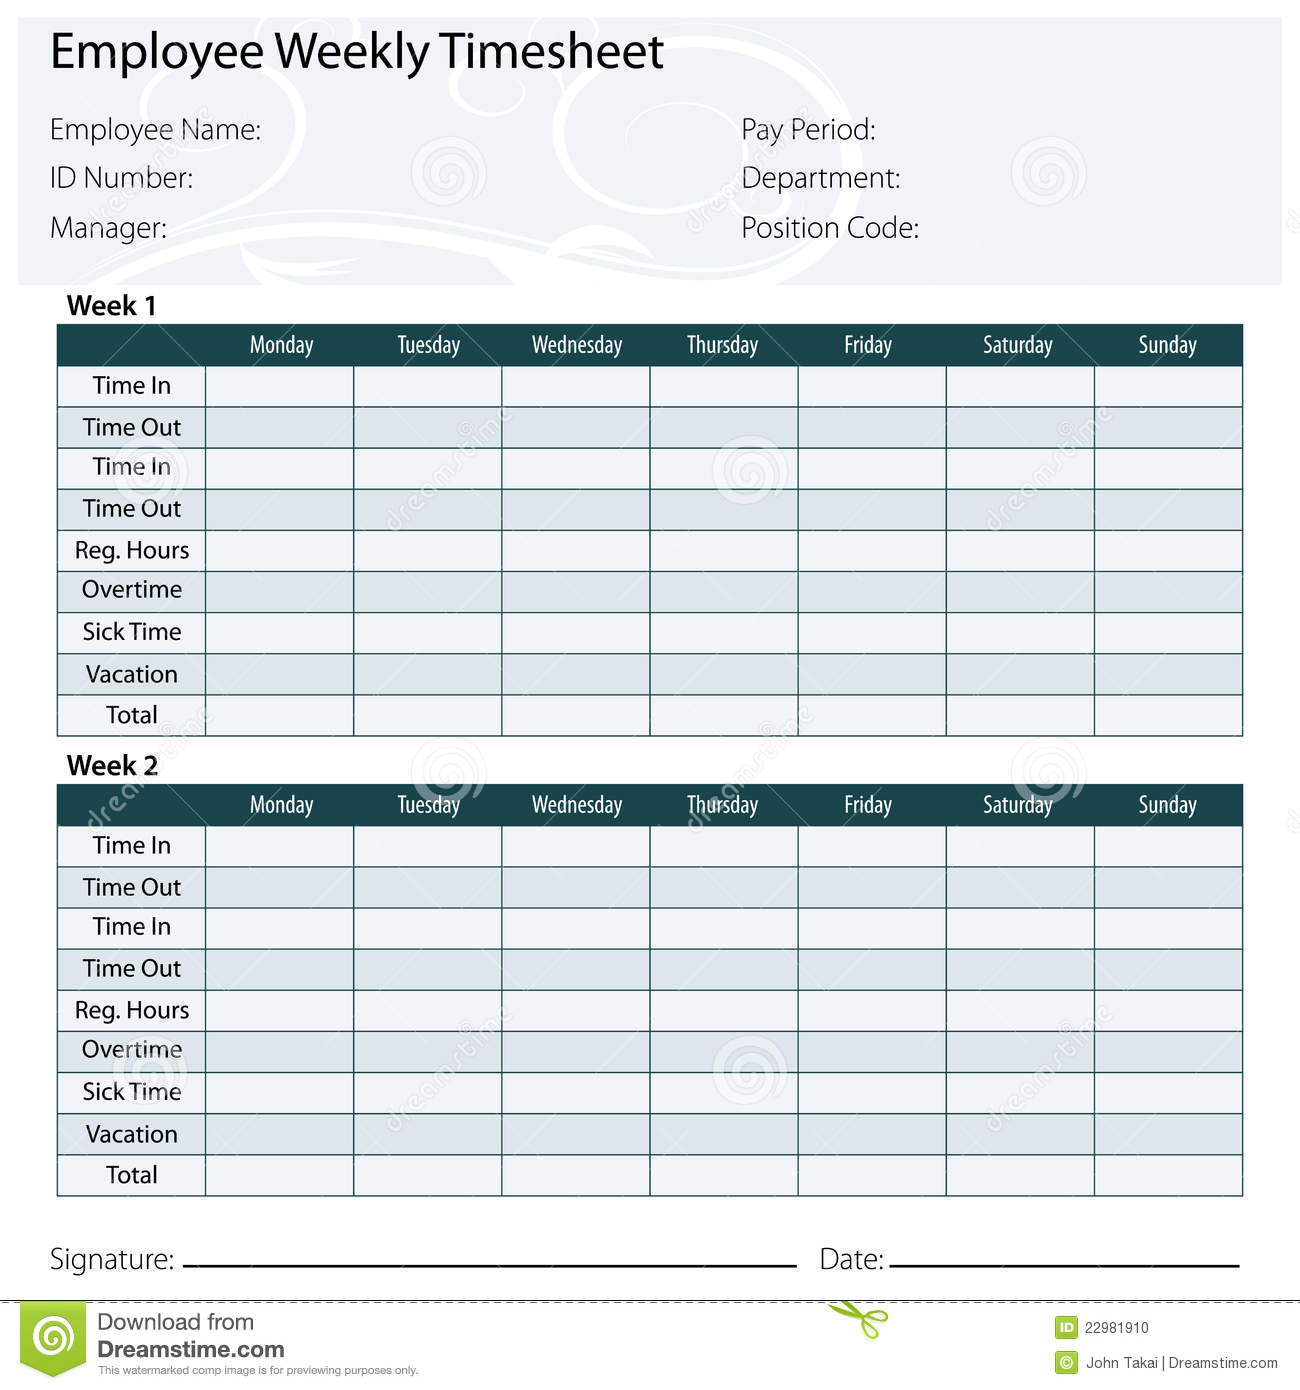 Employee Timesheet Template Stock Photo - Image: 22981910